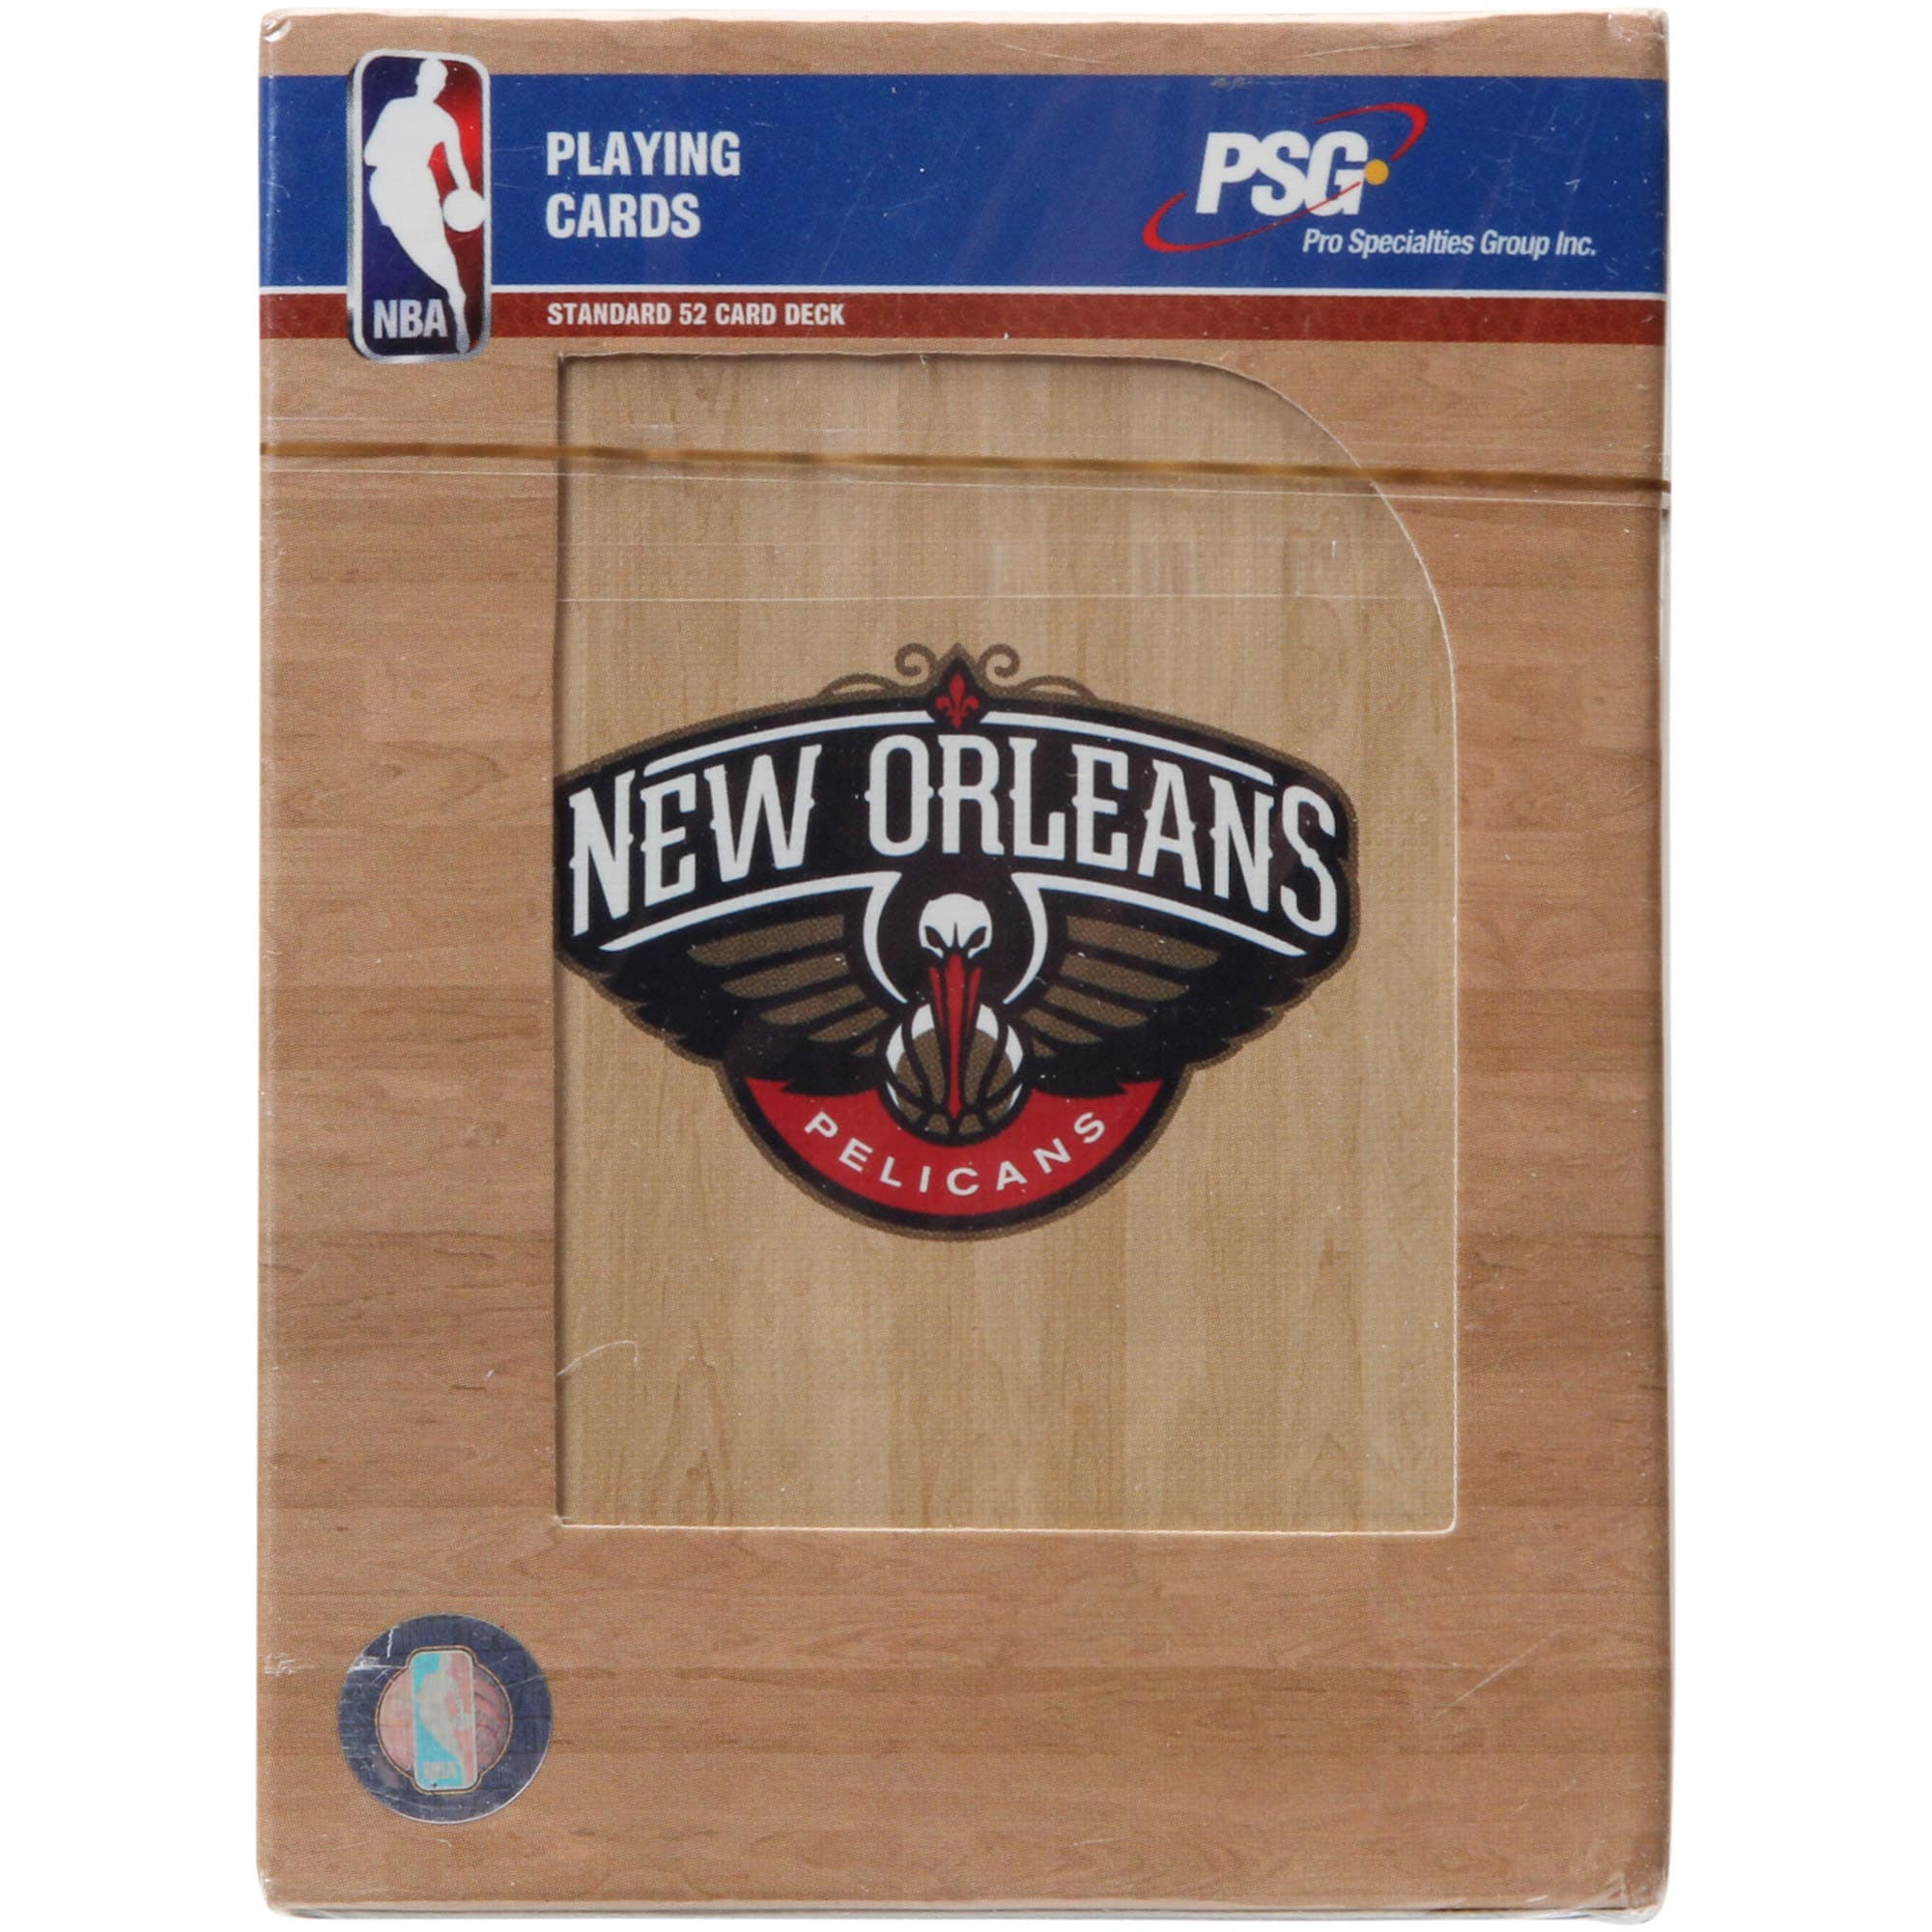 New Orleans Pelicans Team Playing Cards